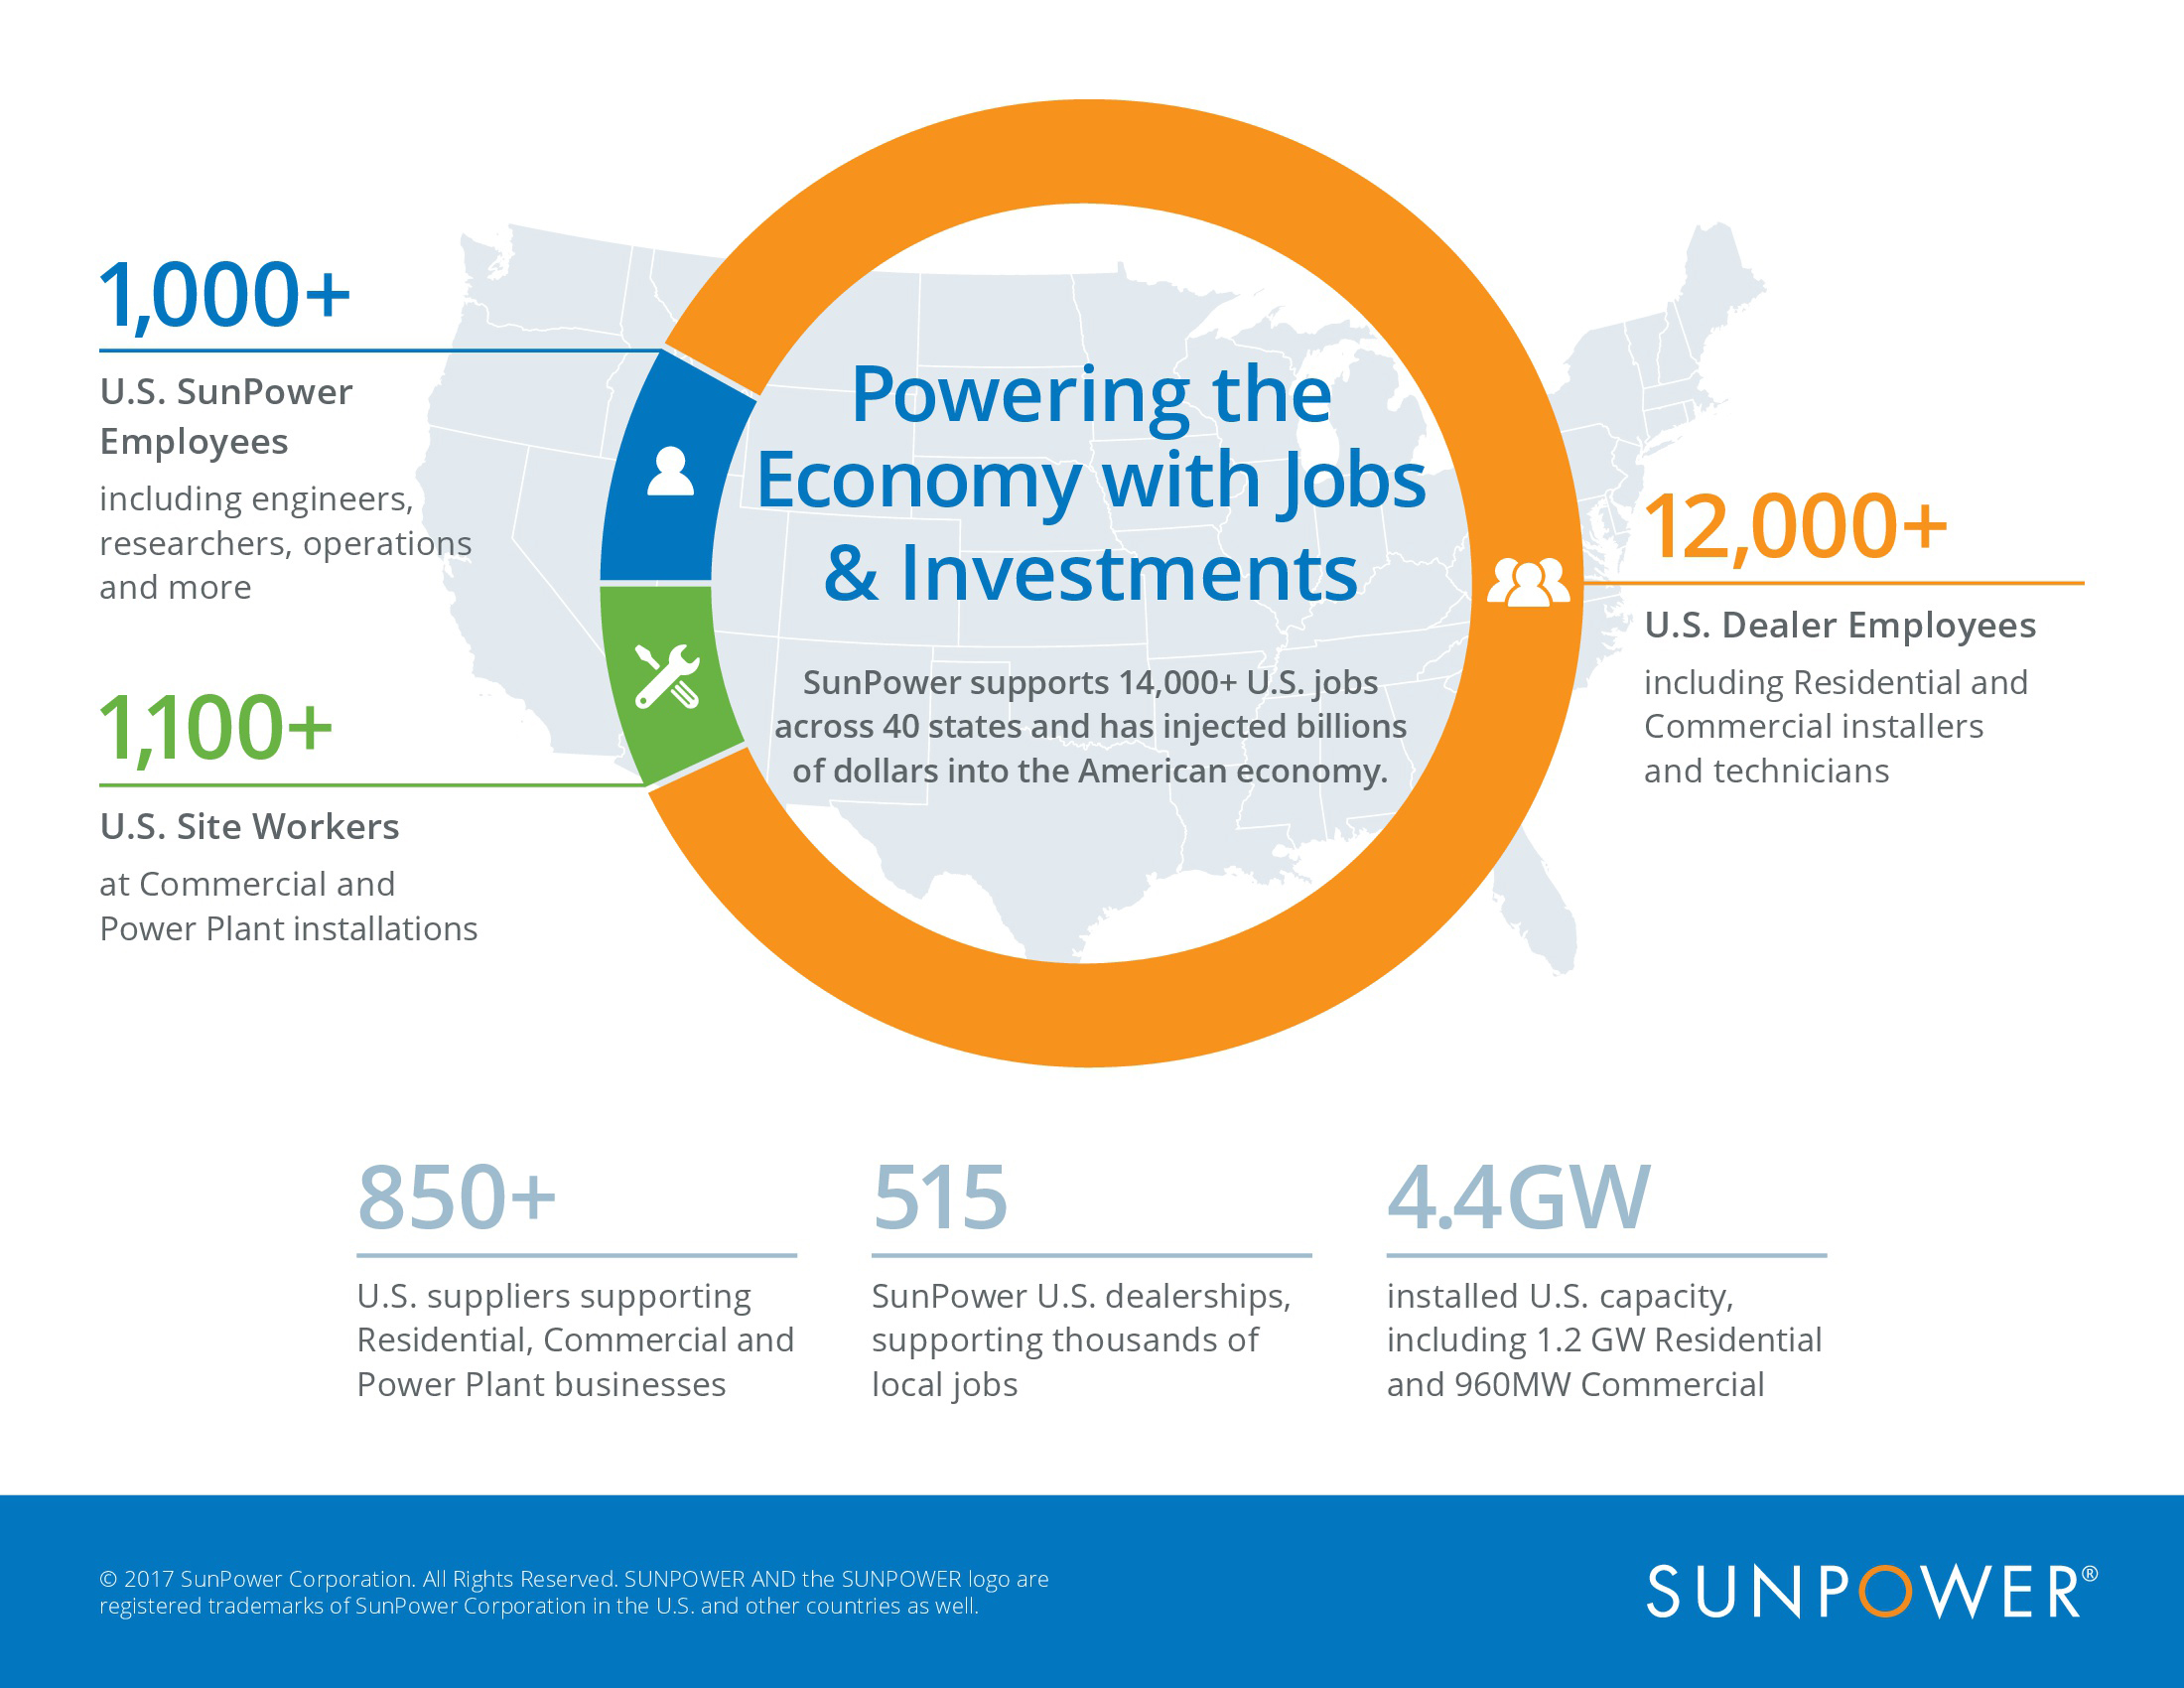 SunPower supports 14,000+ U.S. jobs across 40 states and has injected billions of dollars into the economy.